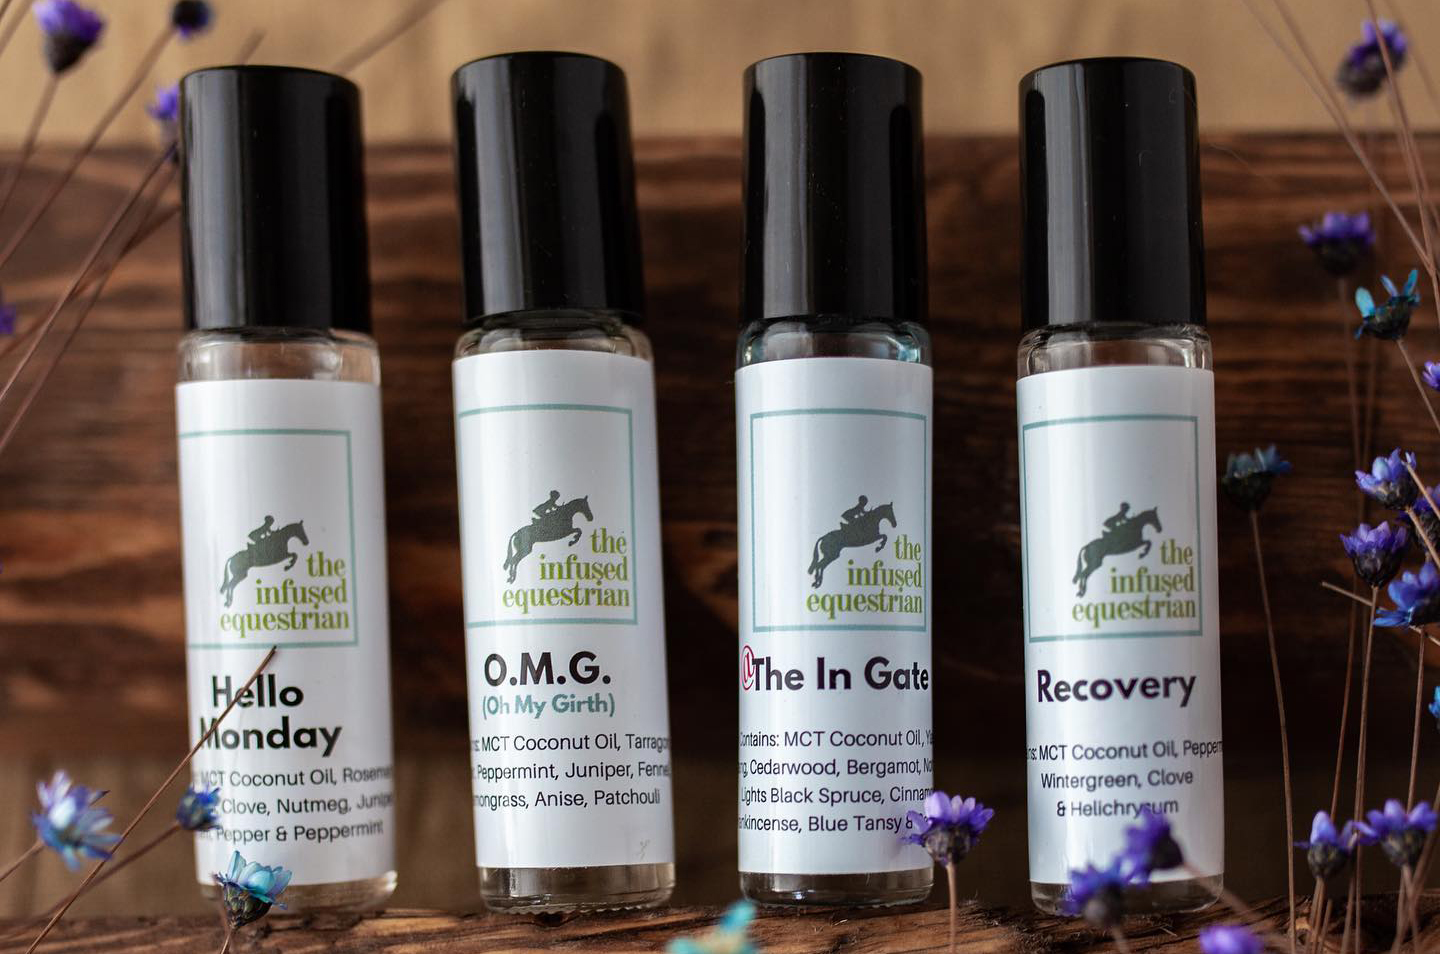 Company Spotlight: The Infused Equestrian